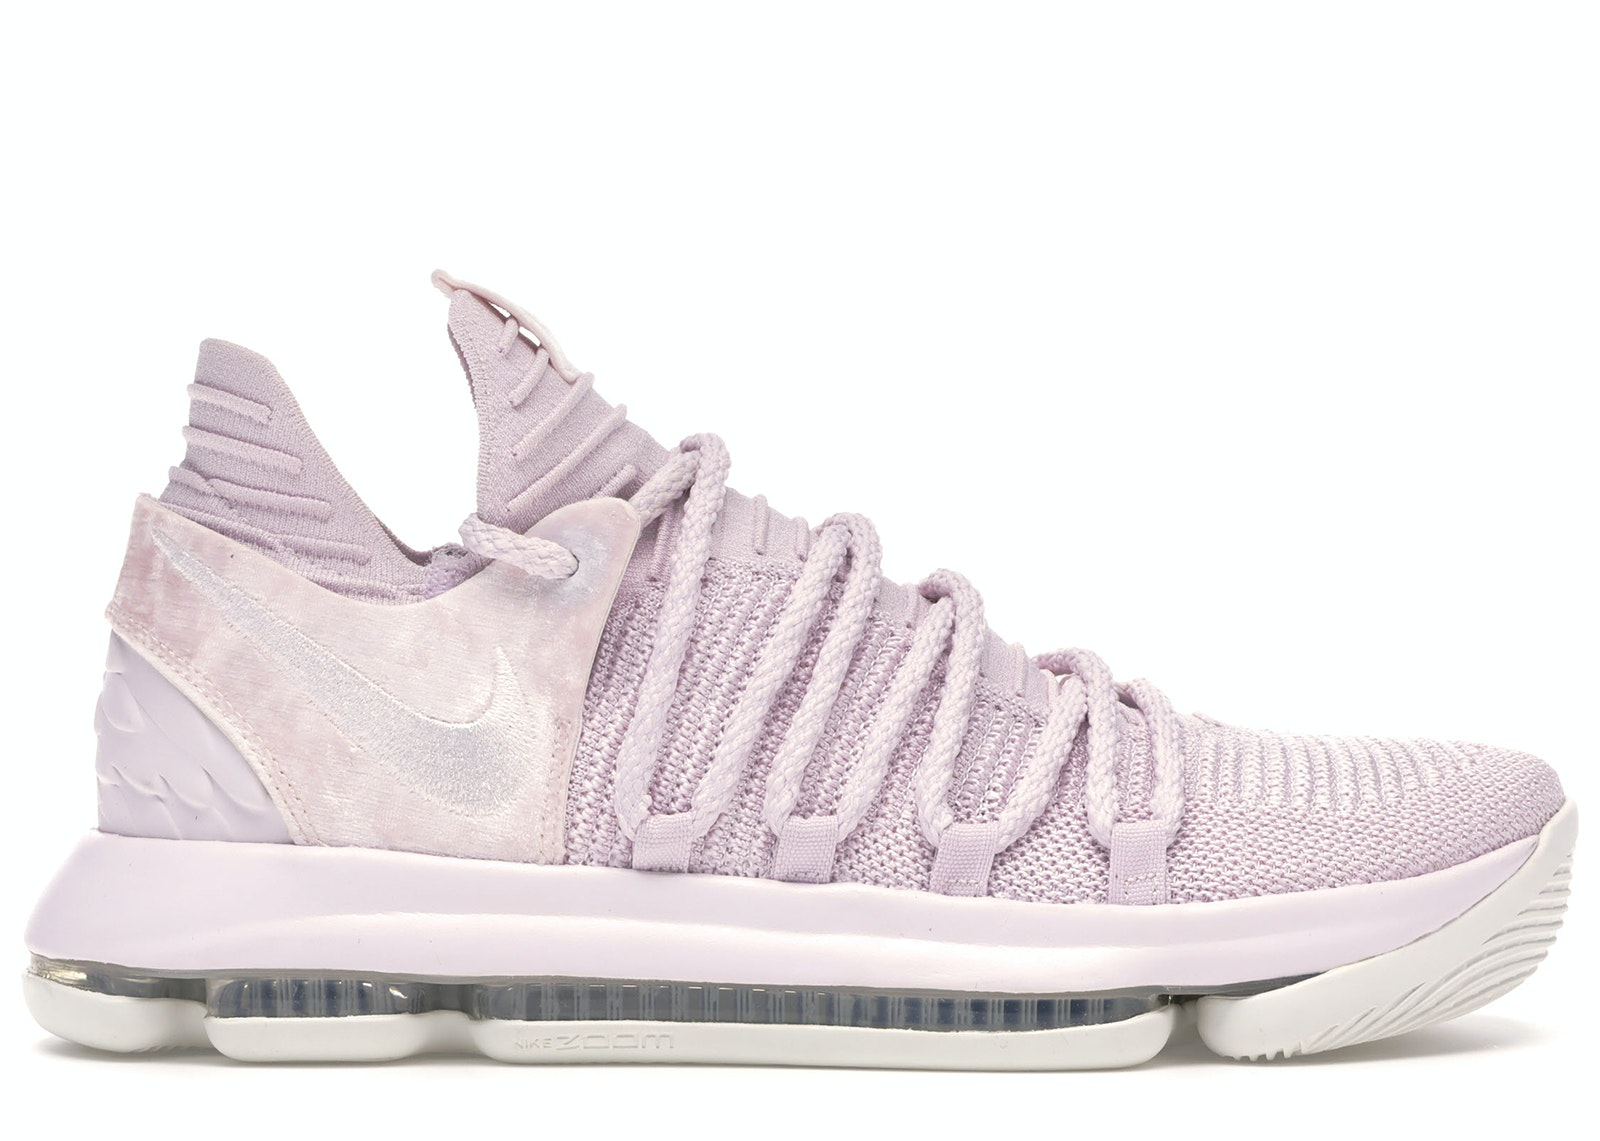 KD 10 Aunt Pearl